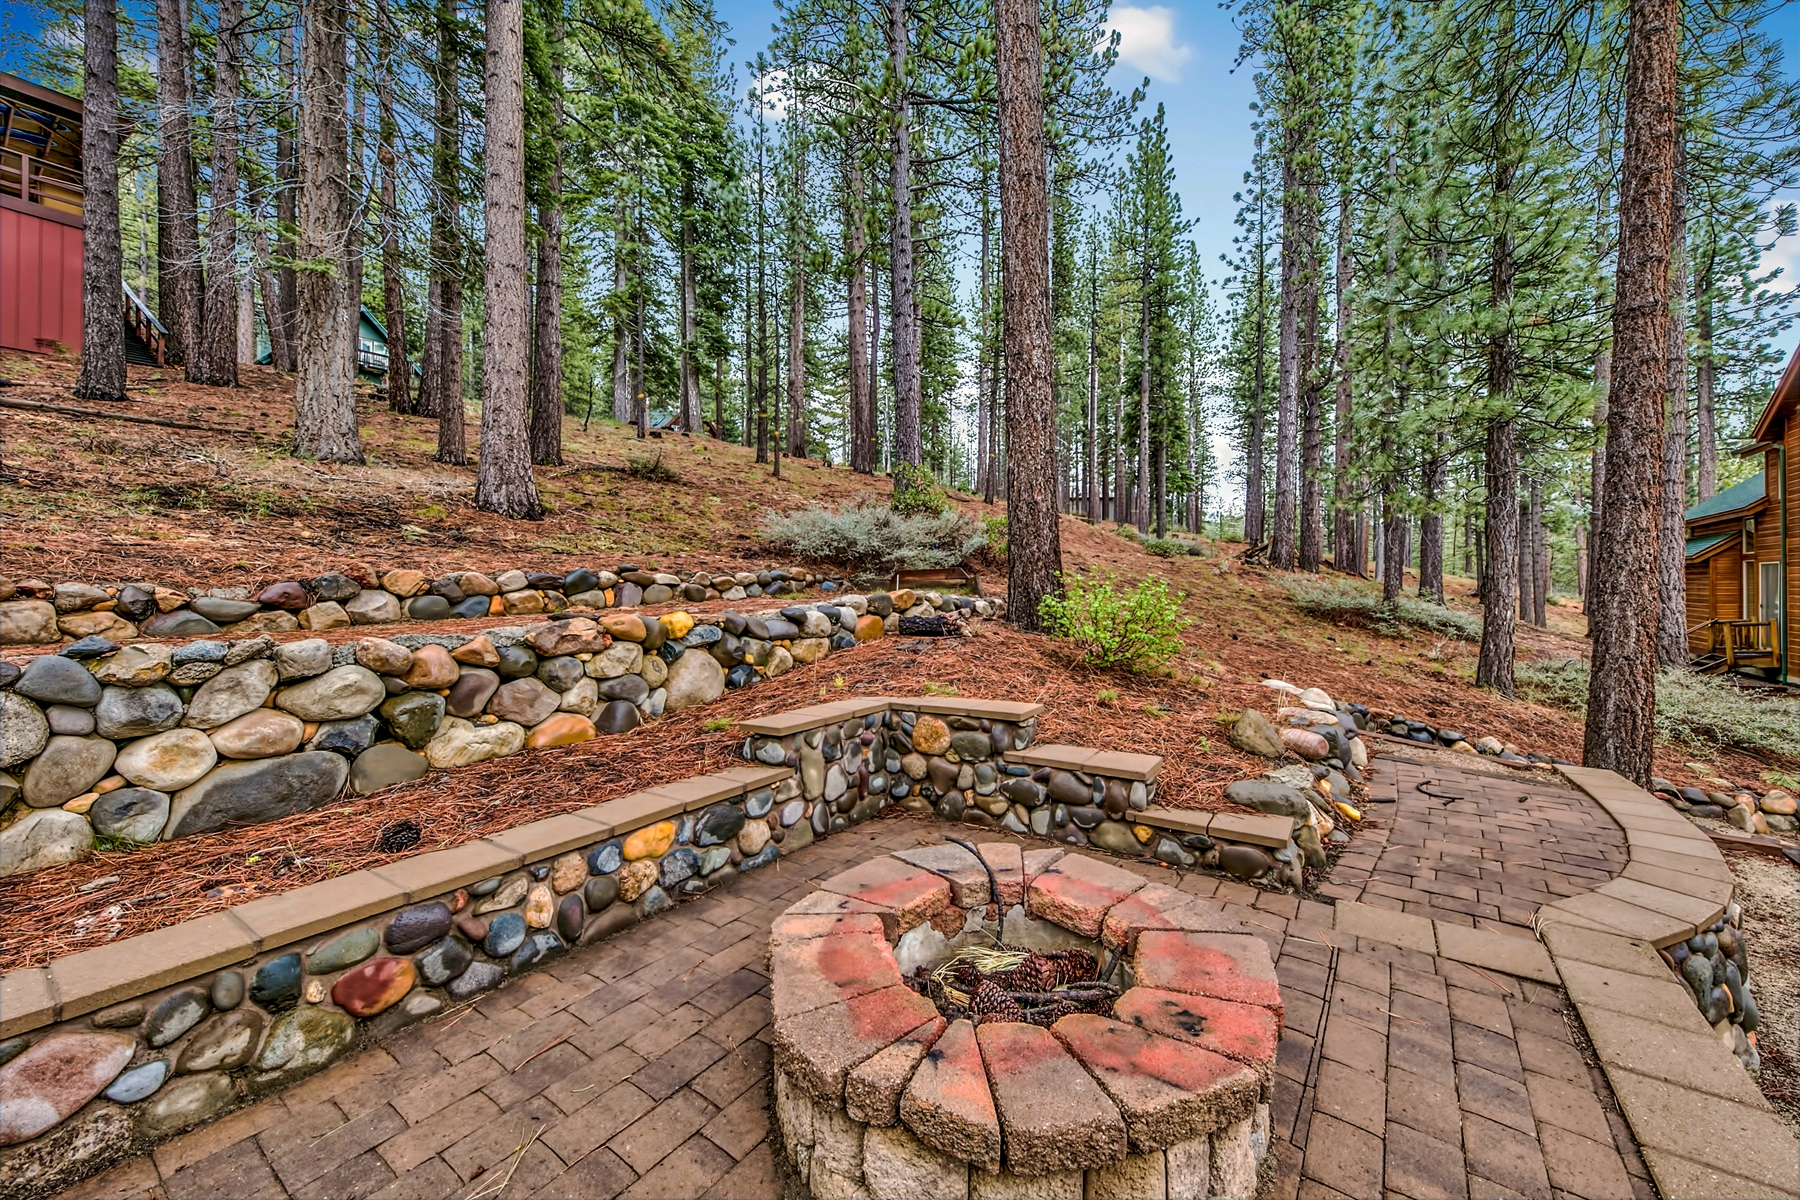 Additional photo for property listing at 2240 Columbine Trail, South Lake Tahoe, CA 96150 2240 Columbine Trail South Lake Tahoe, California 96150 United States